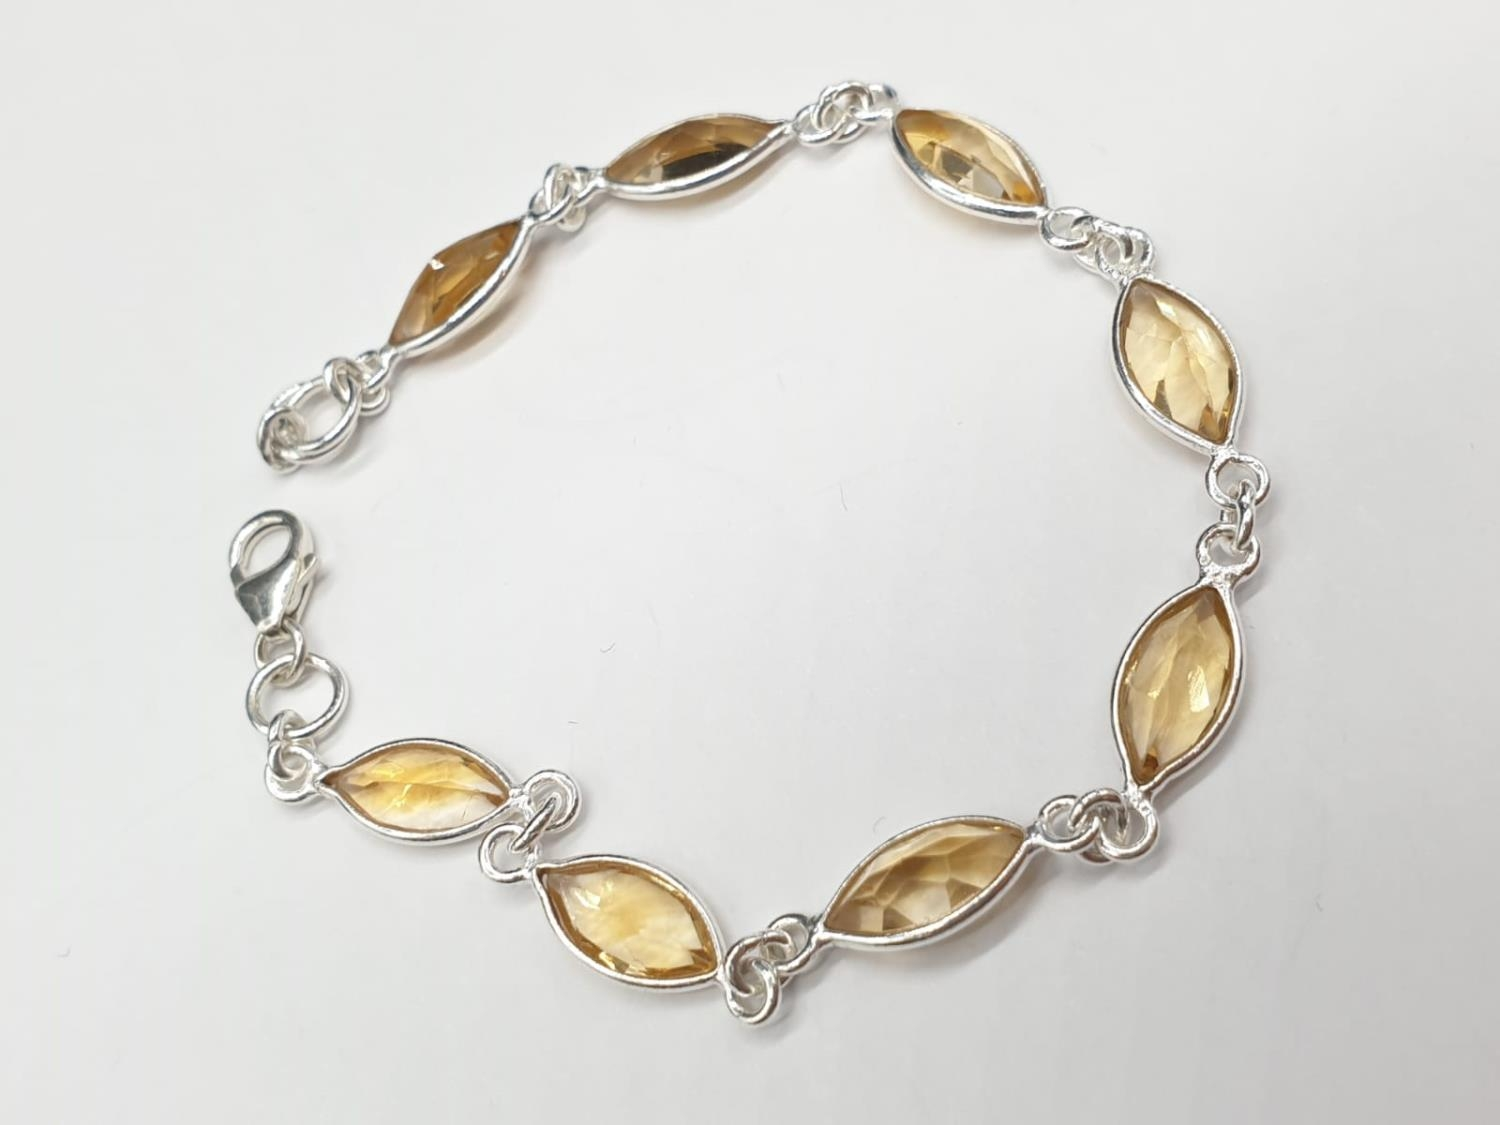 Marquise Shape Citrine Bracelet with Matching Dangler Earrings and Ring in Sterling Silver. Ring - Image 3 of 6